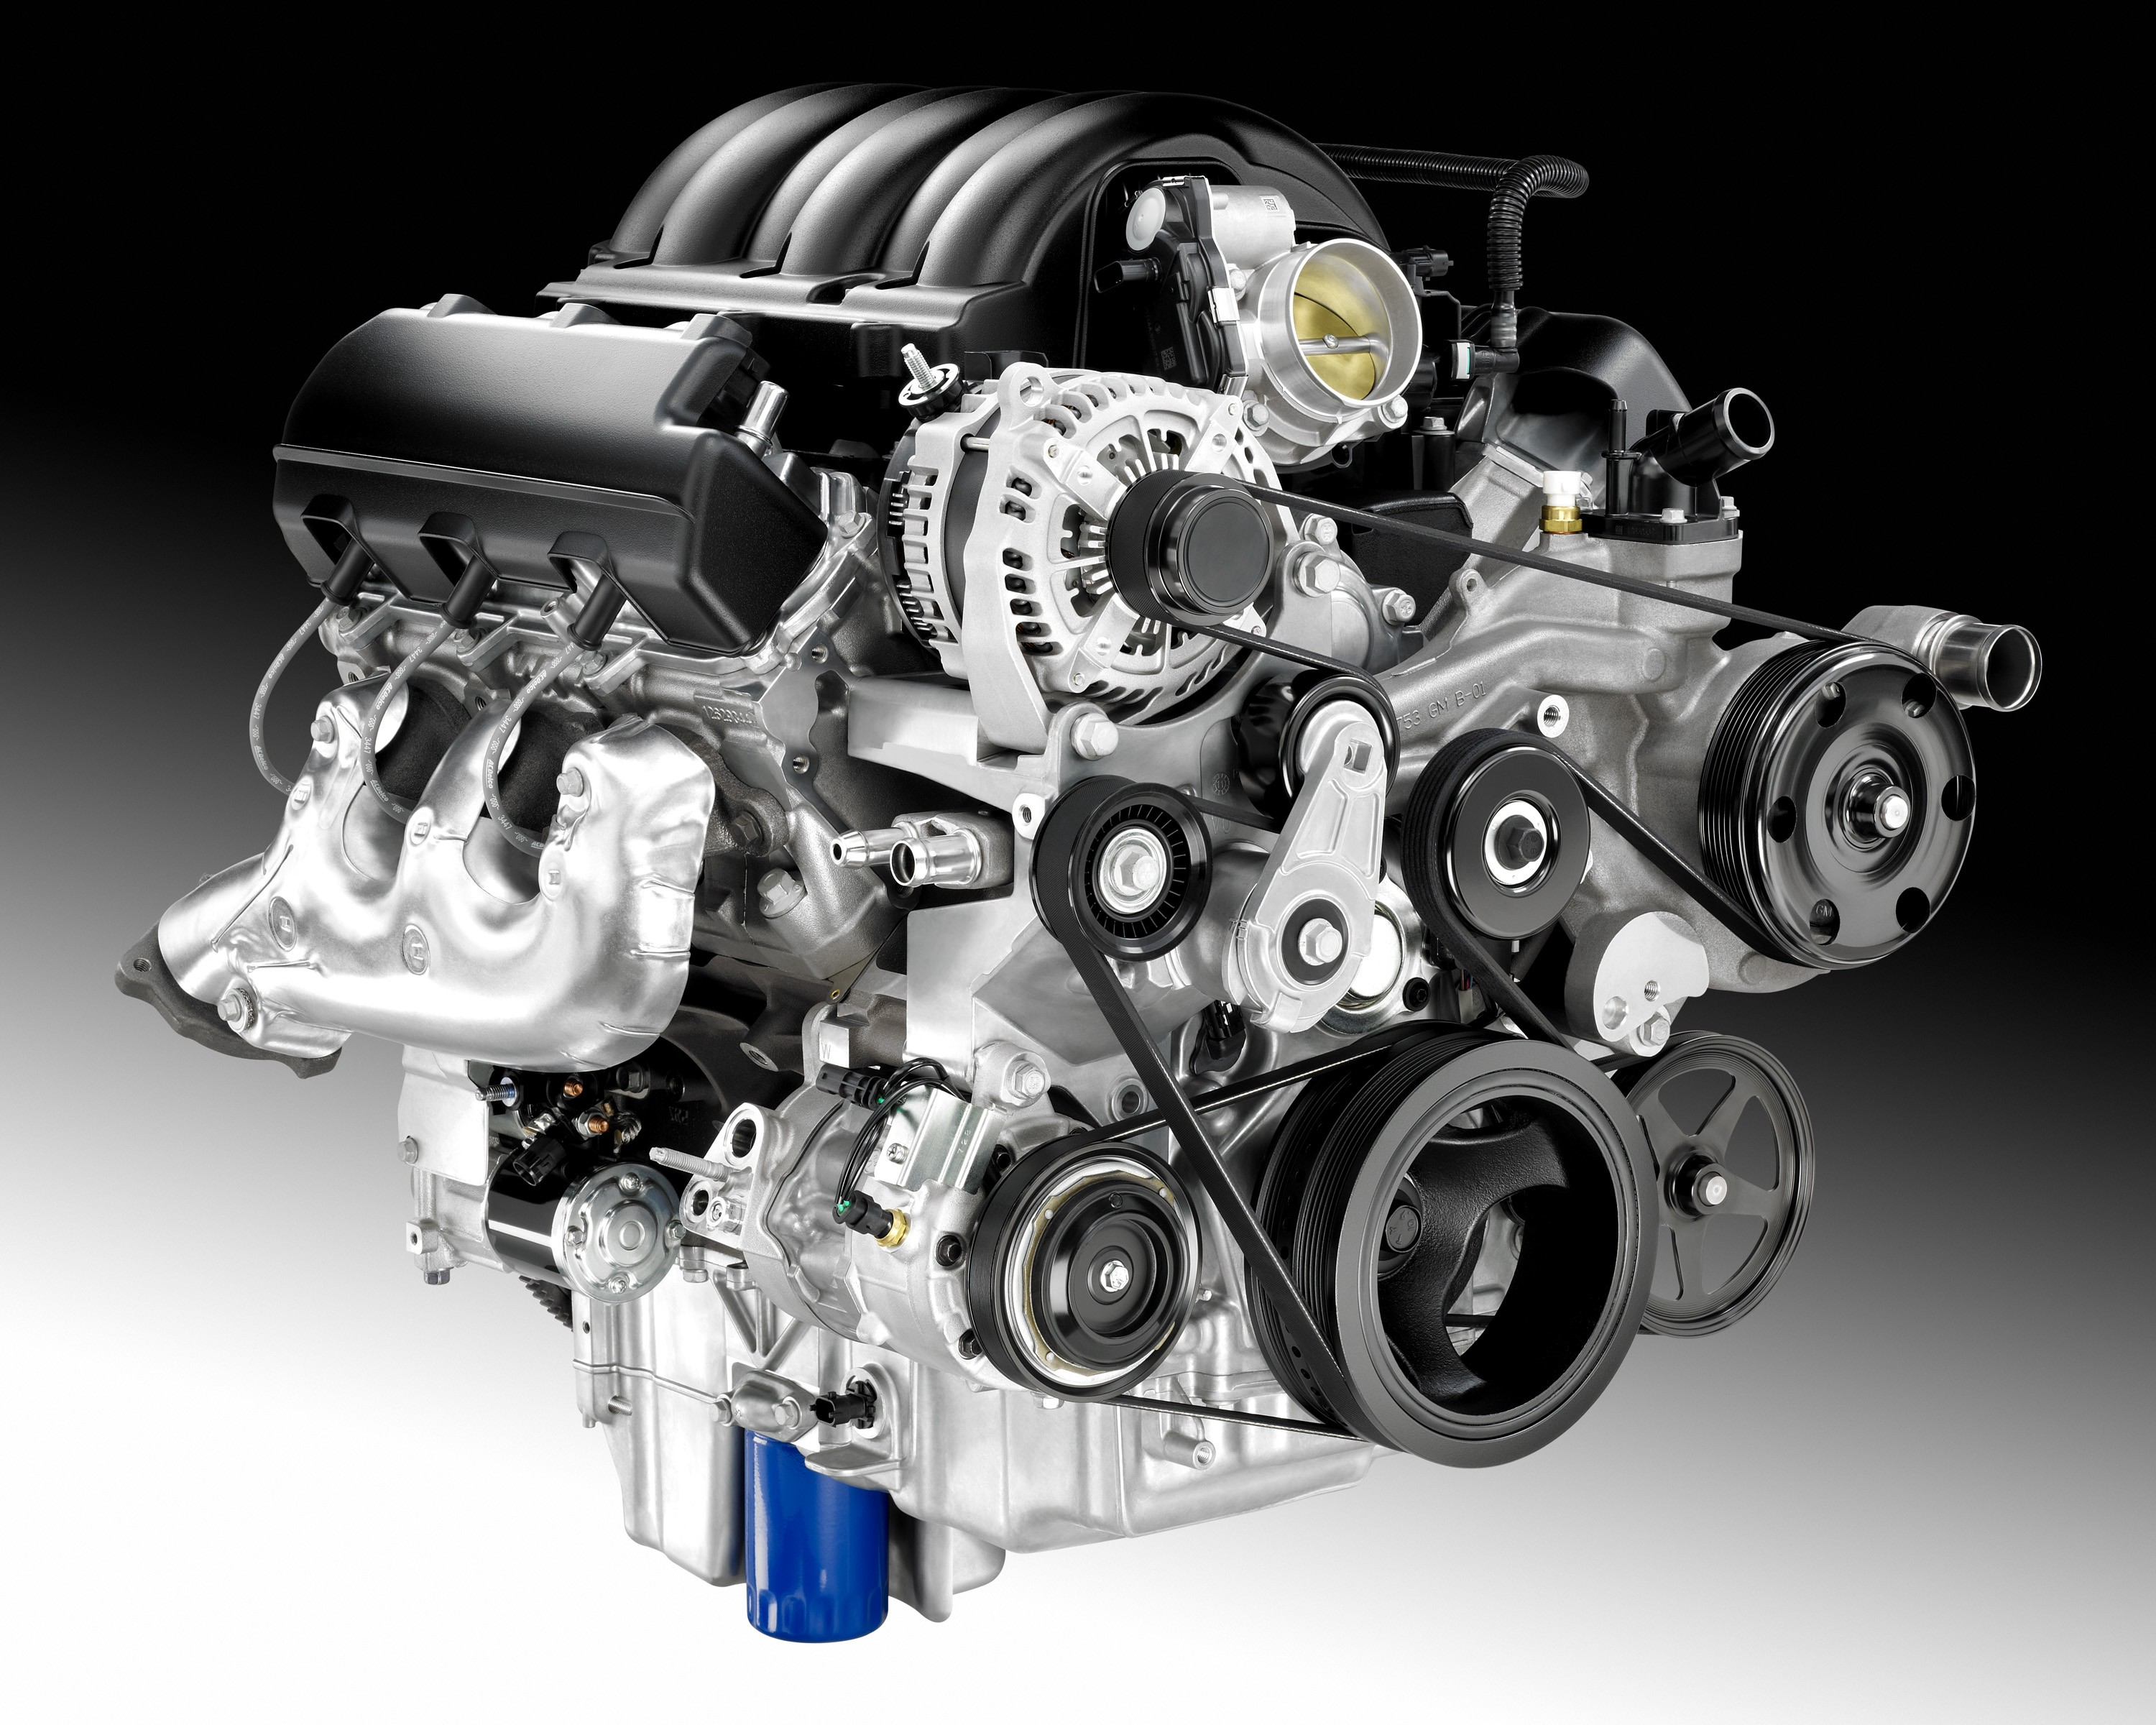 4 3 vortec engine diagram trio of new ecotec3 engines powers rh detoxicrecenze com Chevy Silverado Turbo Silverado